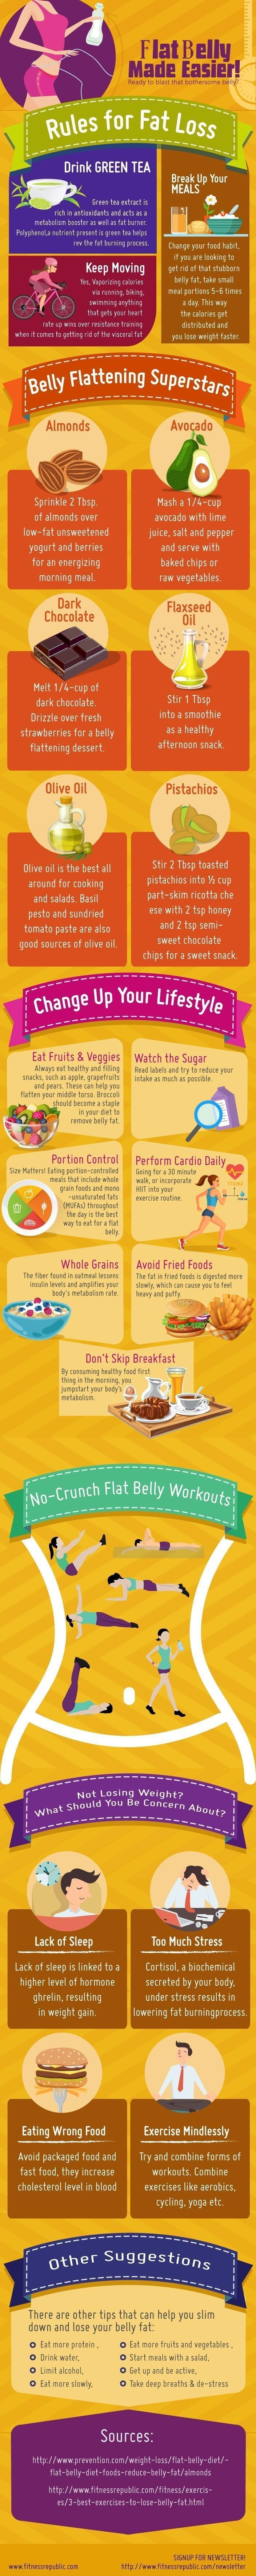 21 Minutes a Day Fat Burning - Gaining a flat belly can be a real struggle. Often, the difficulty is because of the belief we put in misconceptions. Here#39;s how to get a flat belly. Using this 21-Minute Method, You CAN Eat Carbs, Enjoy Your Favorite Foods, and STILL Burn Away A Bit Of Belly Fat Each and Every Day